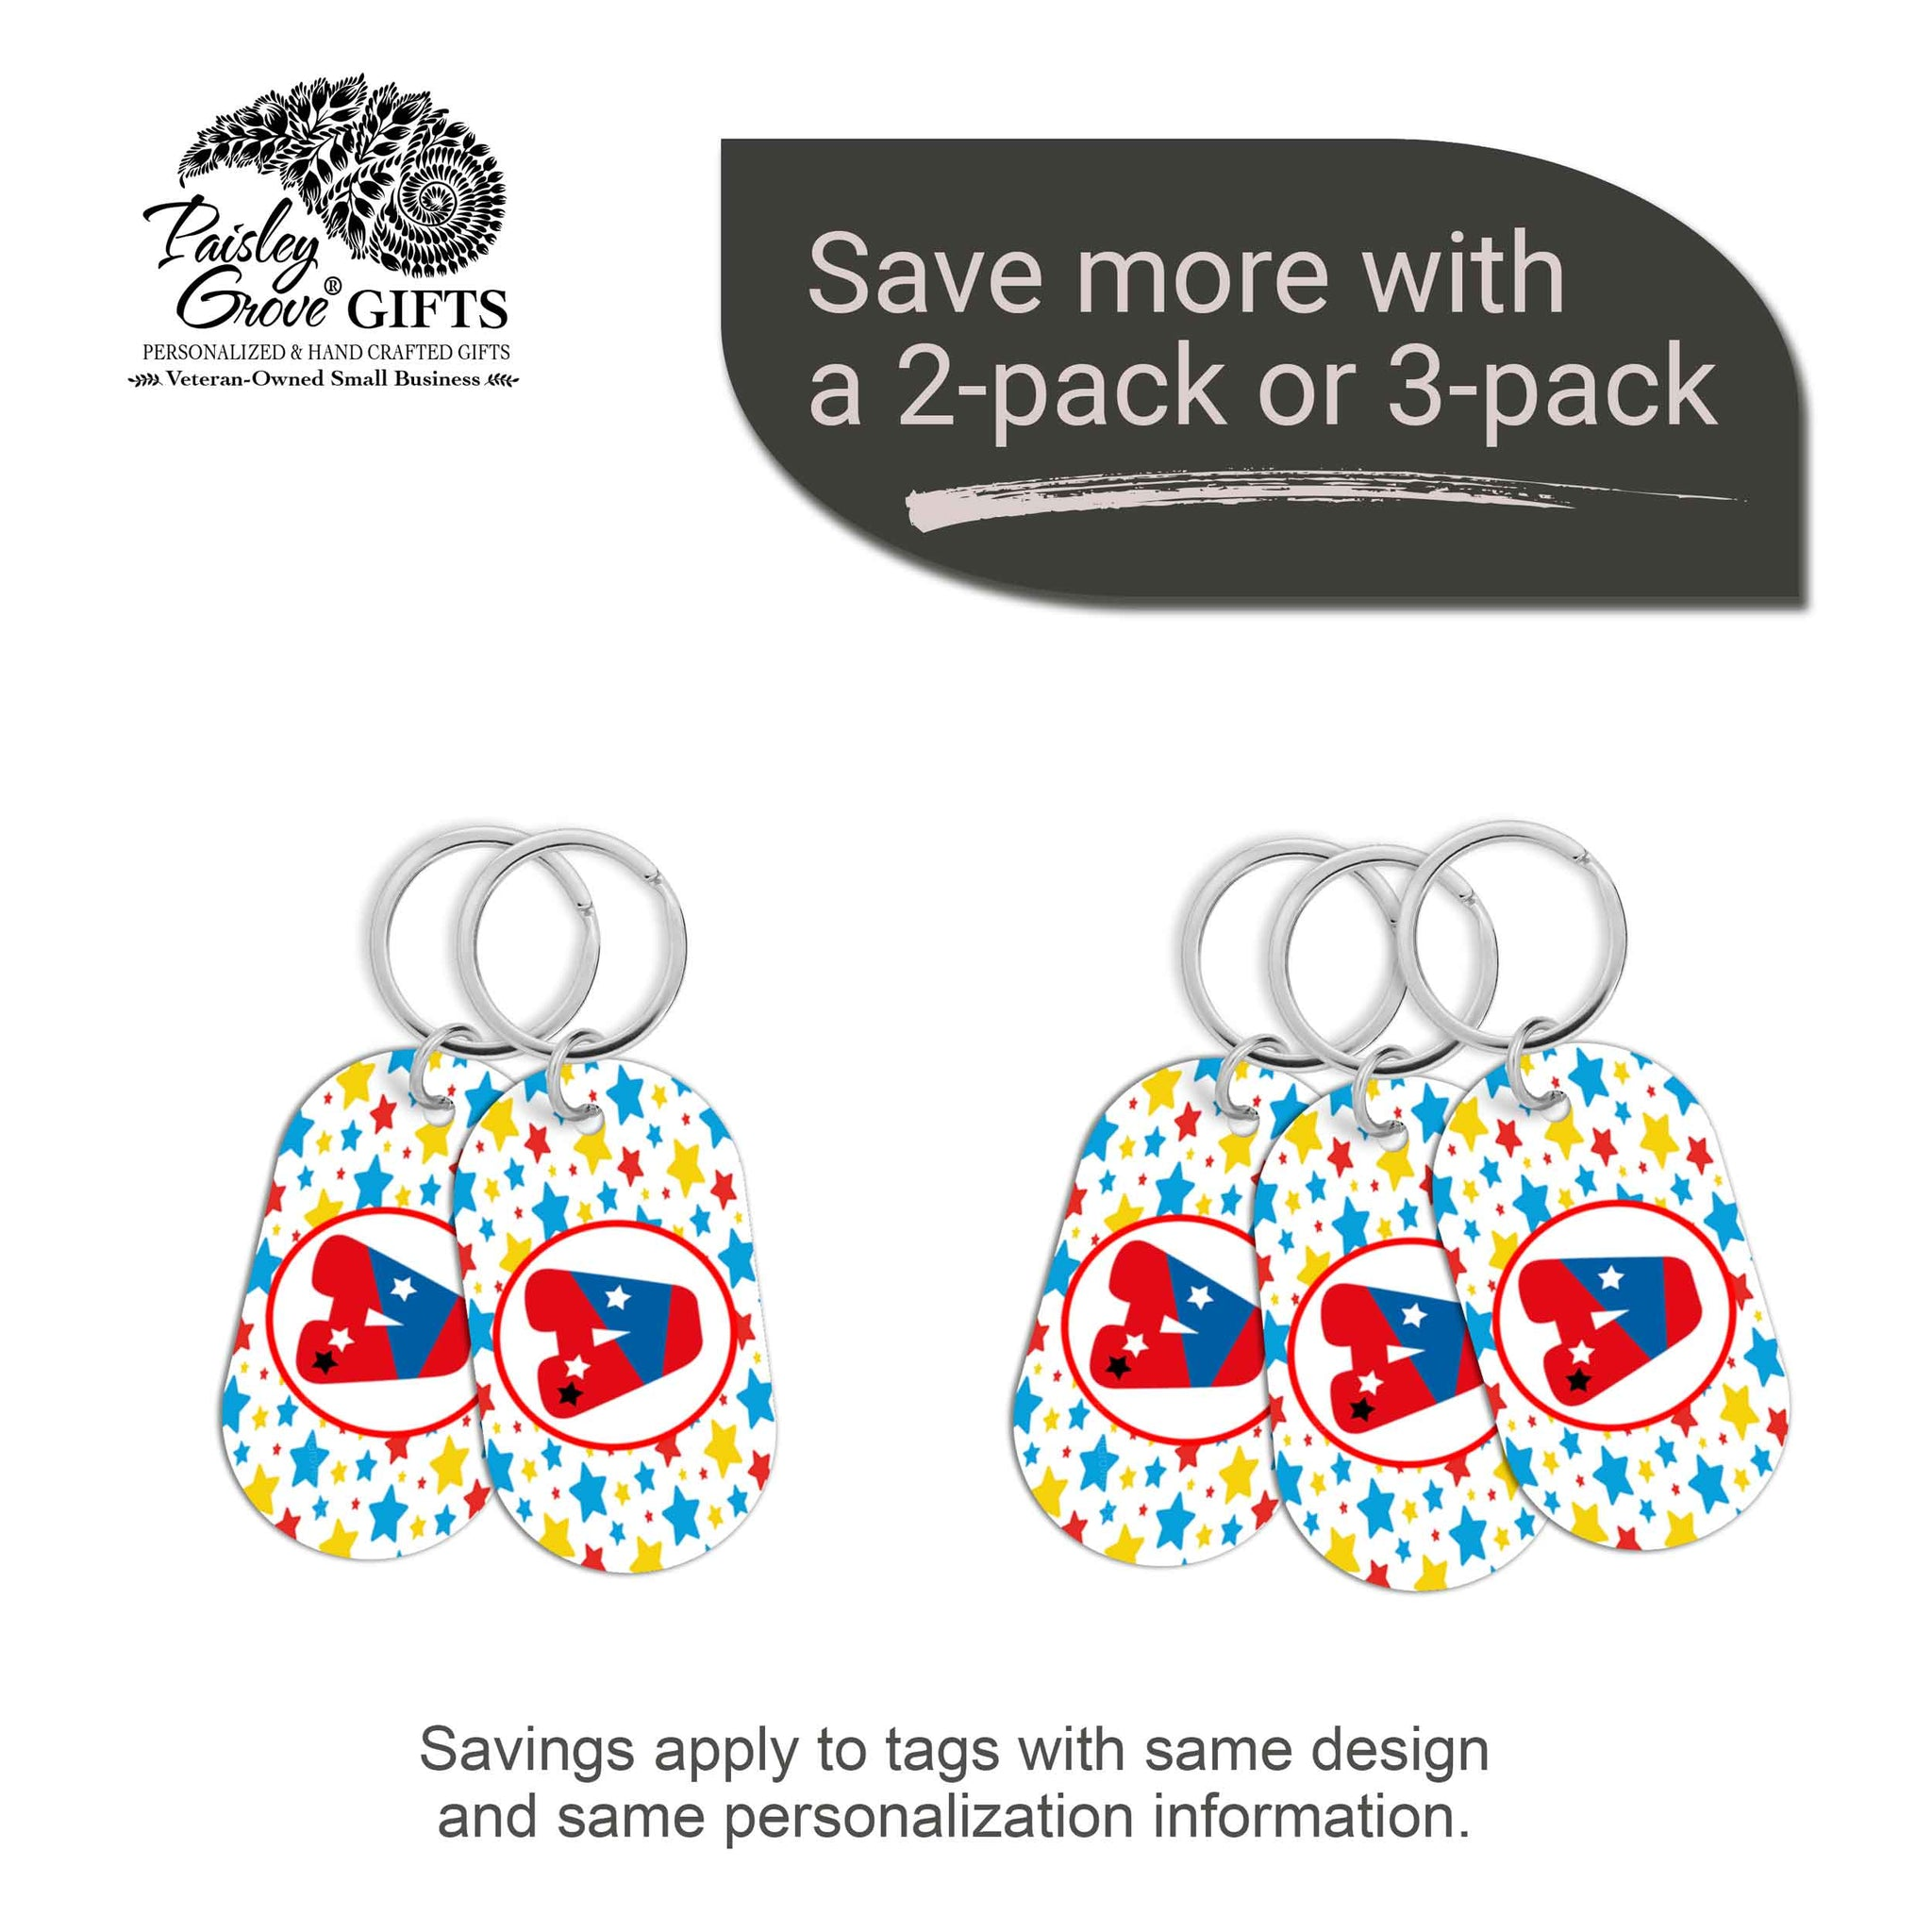 CopyrightPaisleyGroveGIFTS S070a4 Personalized bag ID tags for luggage or bags 2 or 3 pack option savings